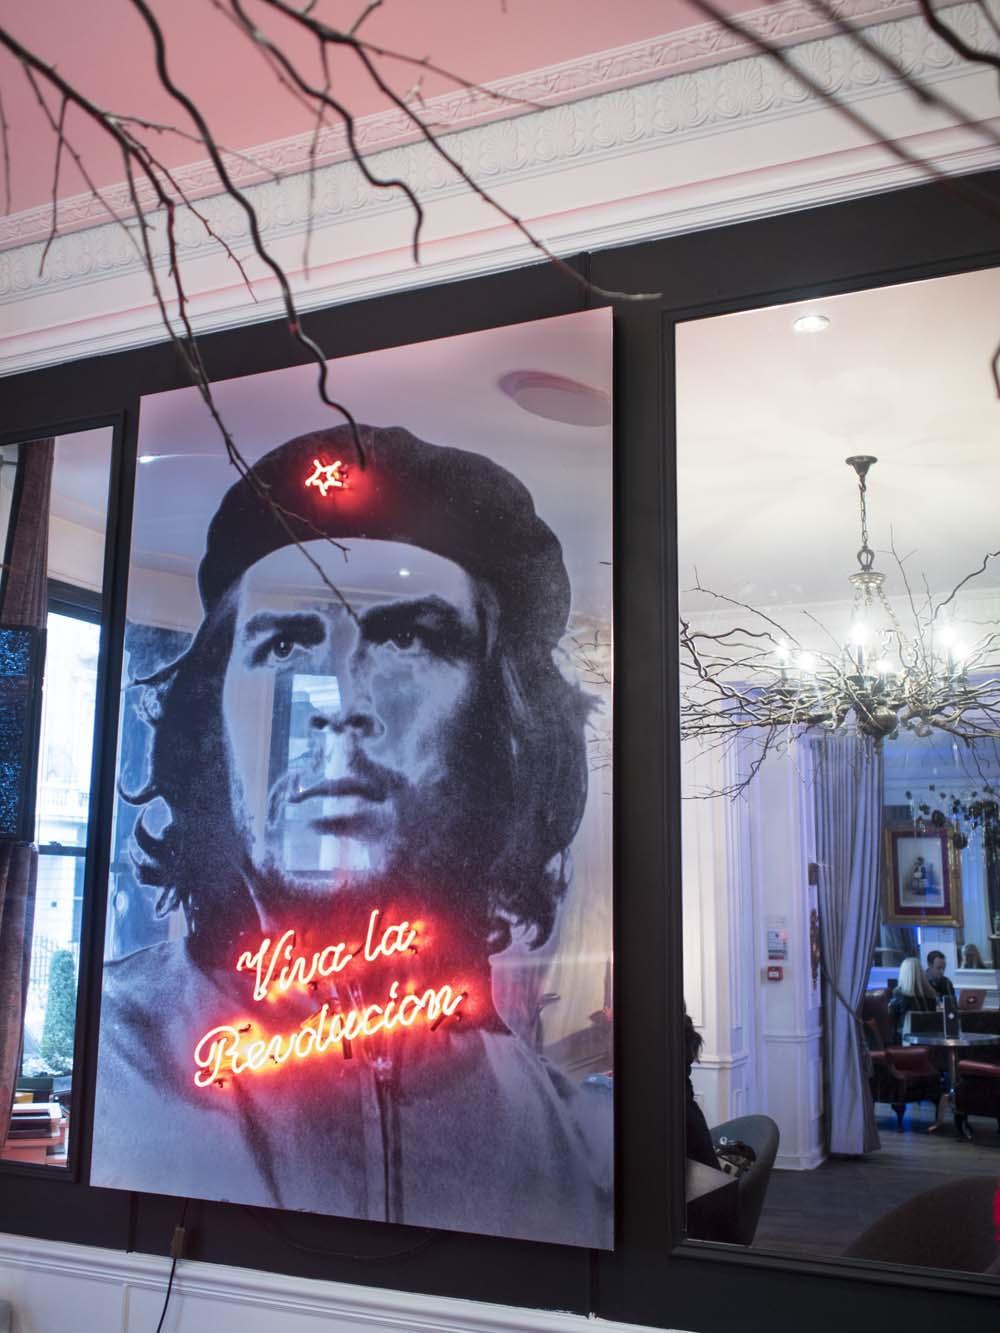 An Incredible Stay at the Exhibitionist Hotel, London   Travel